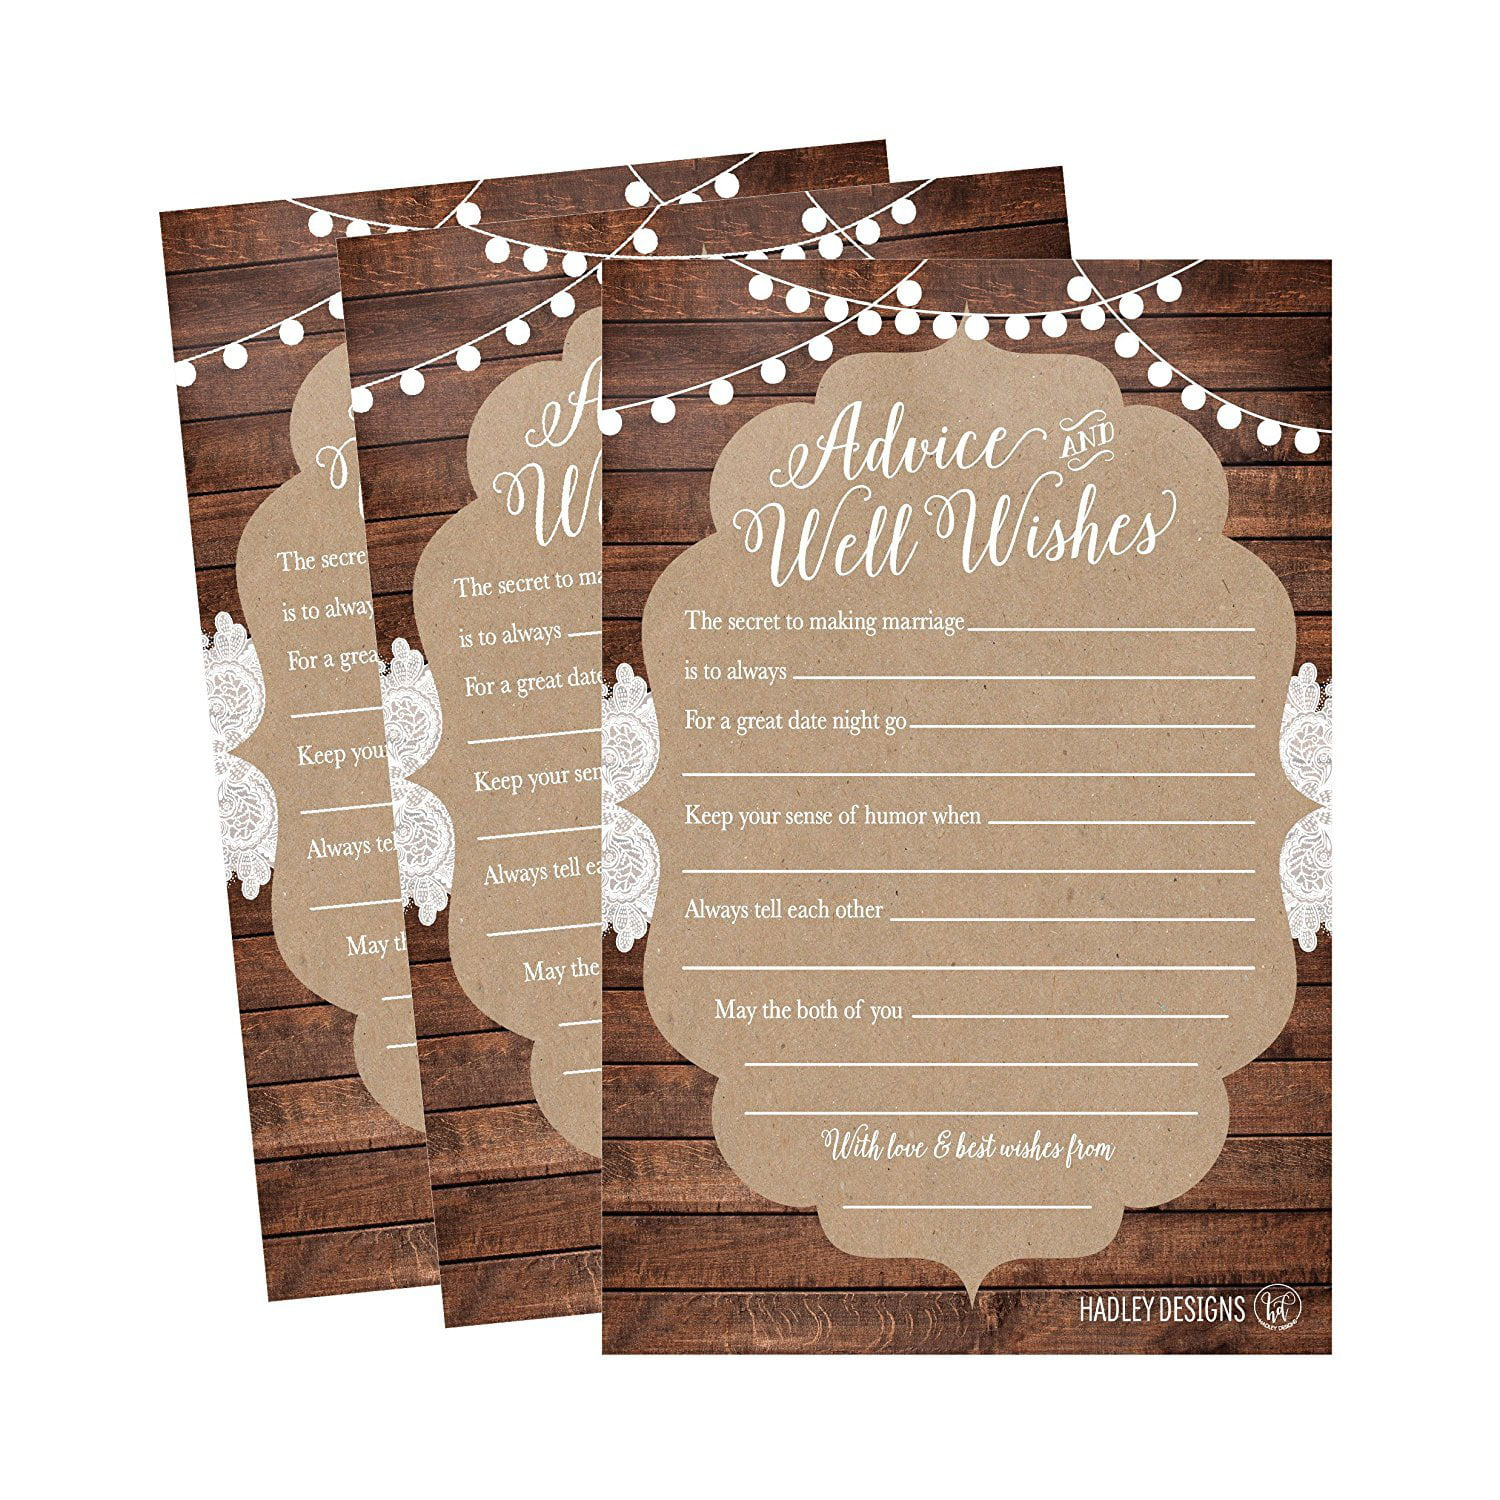 Wedding Advice Cards for the Bride and Groom x 10 RUSTIC COUNTRY Wedding